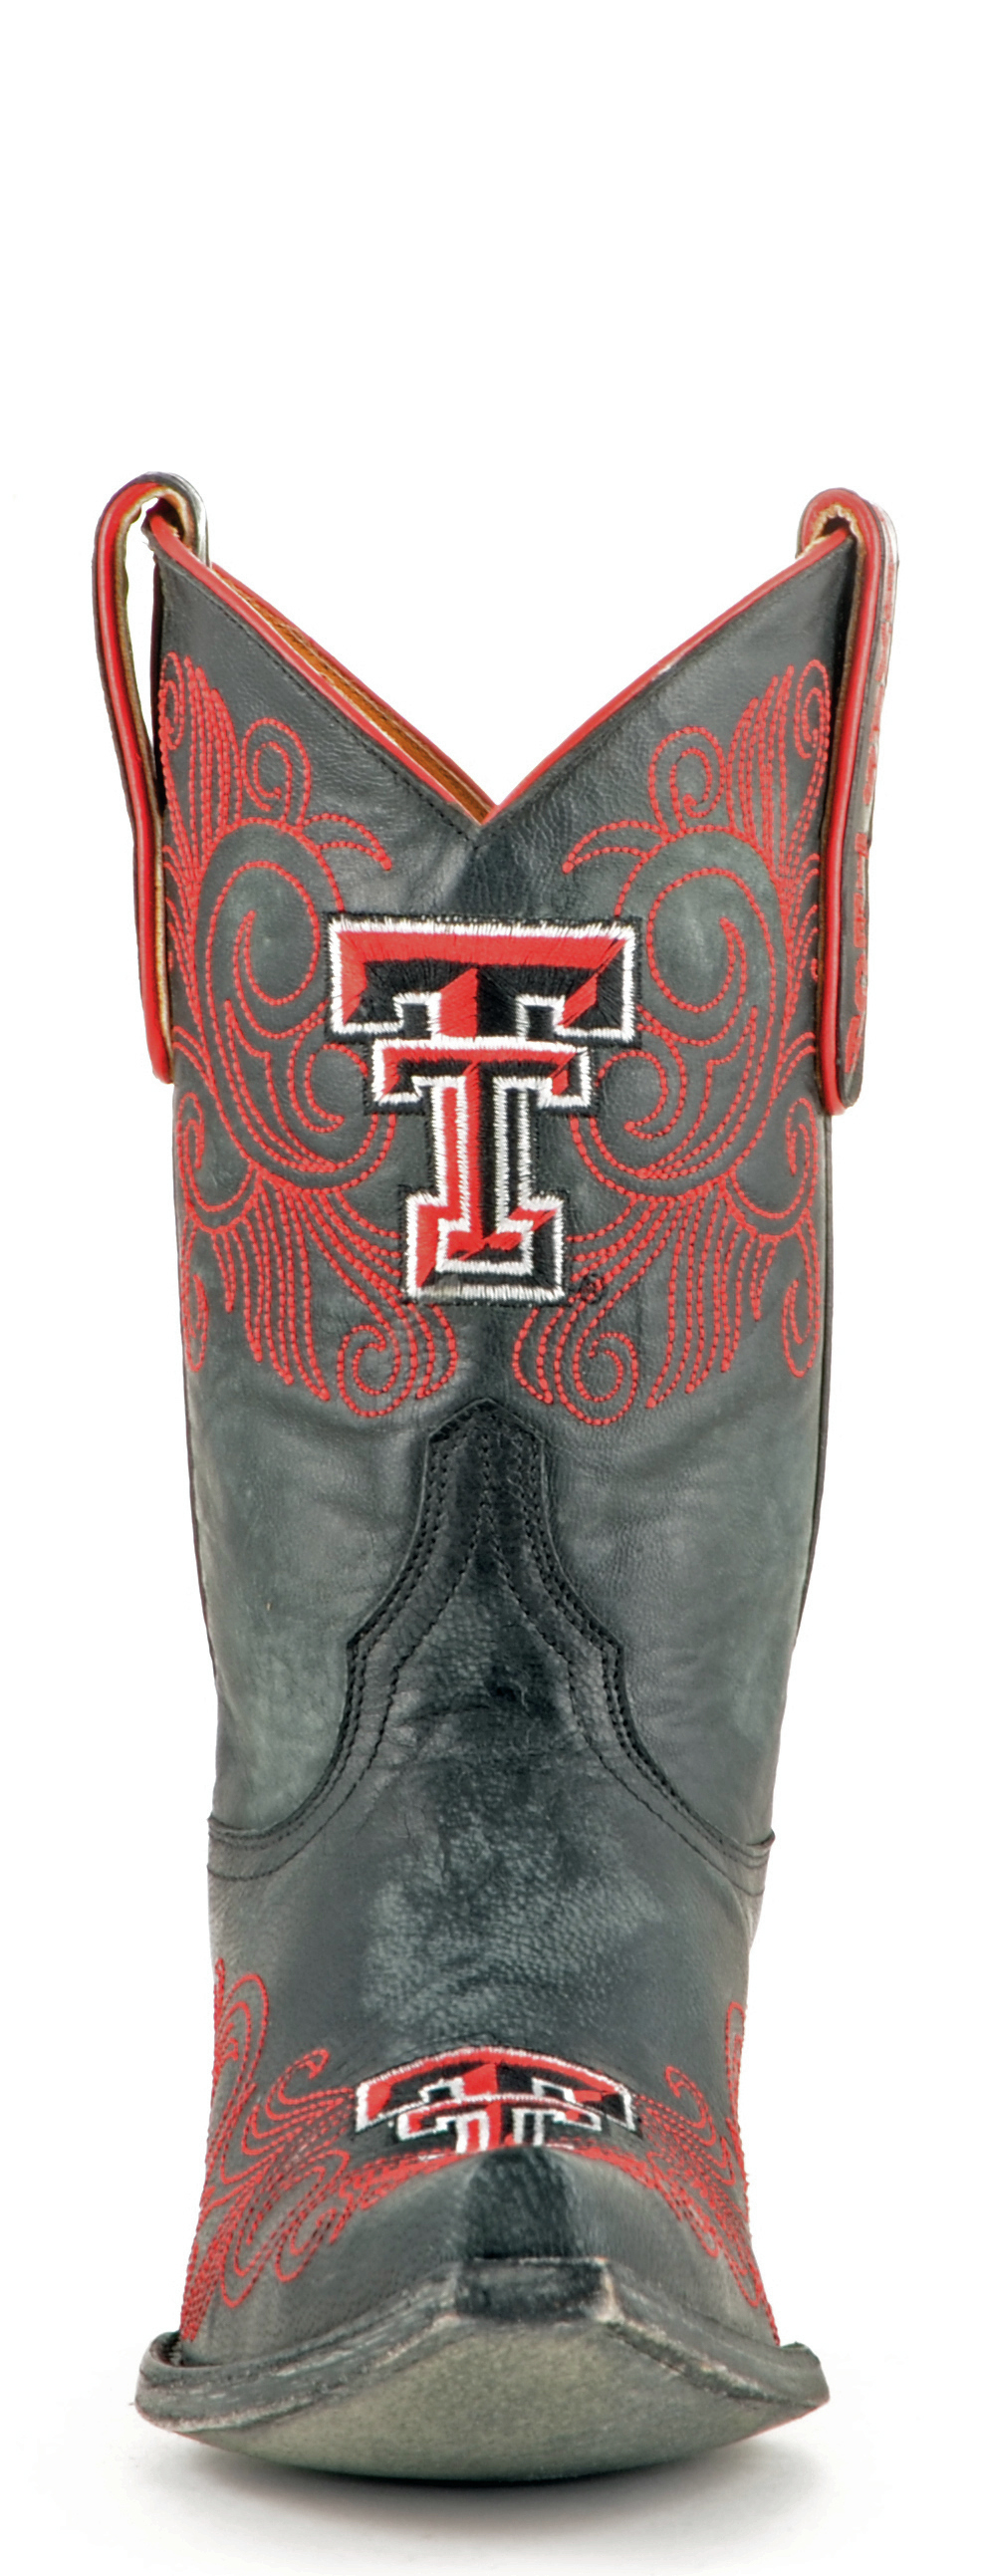 "Gameday Boots Women's 10"" Short Leather Texas Tech Cowboy Boots 3626 NEW"